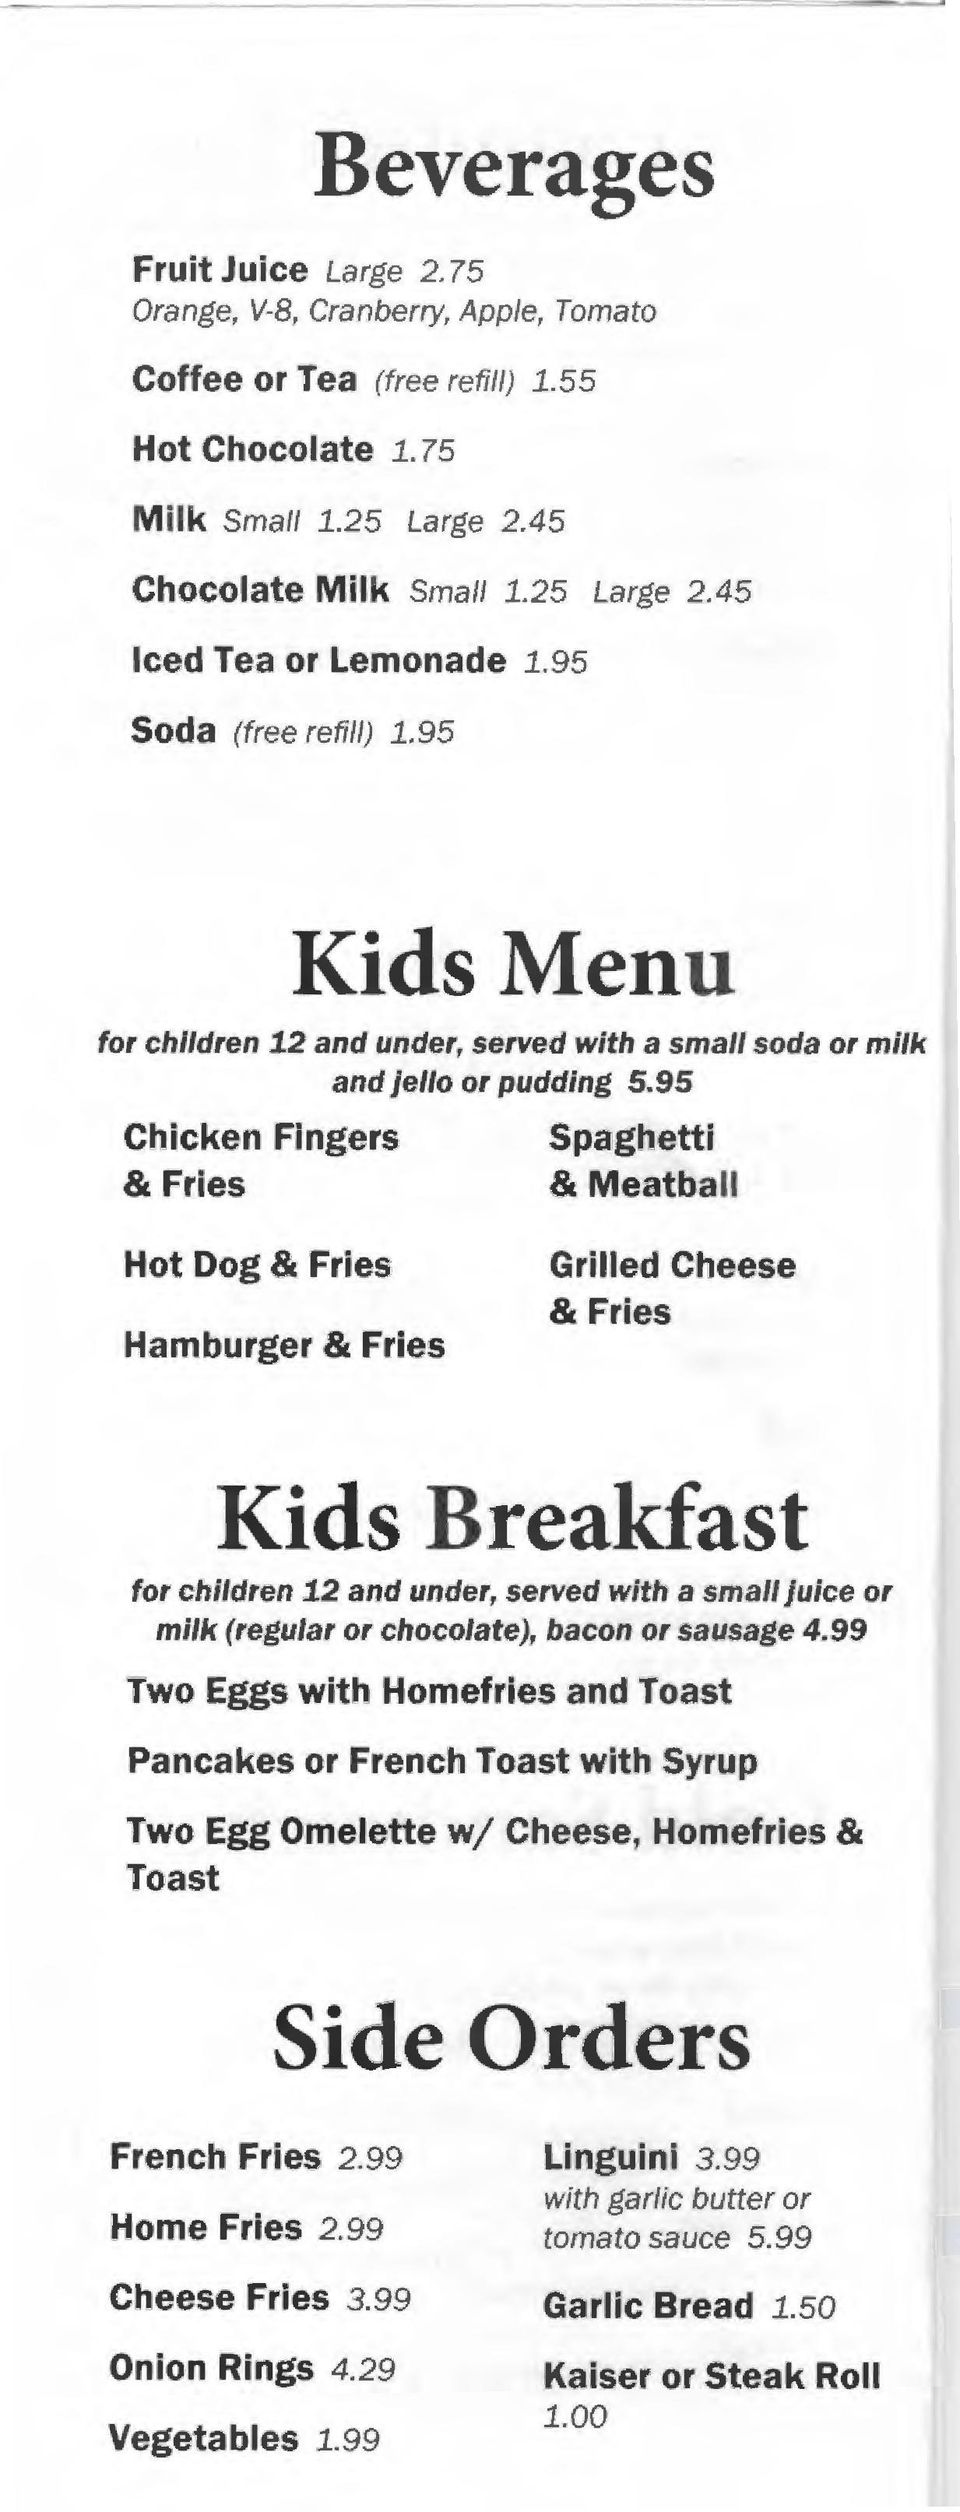 95 Chicken Fingers & Fries Spaghetti & Meatball Hot Dog & Fries Hamburger & Fries Grilled Cheese & Fries Kids Breakfast for children 12 and under, served with a small juice or milk (regular or